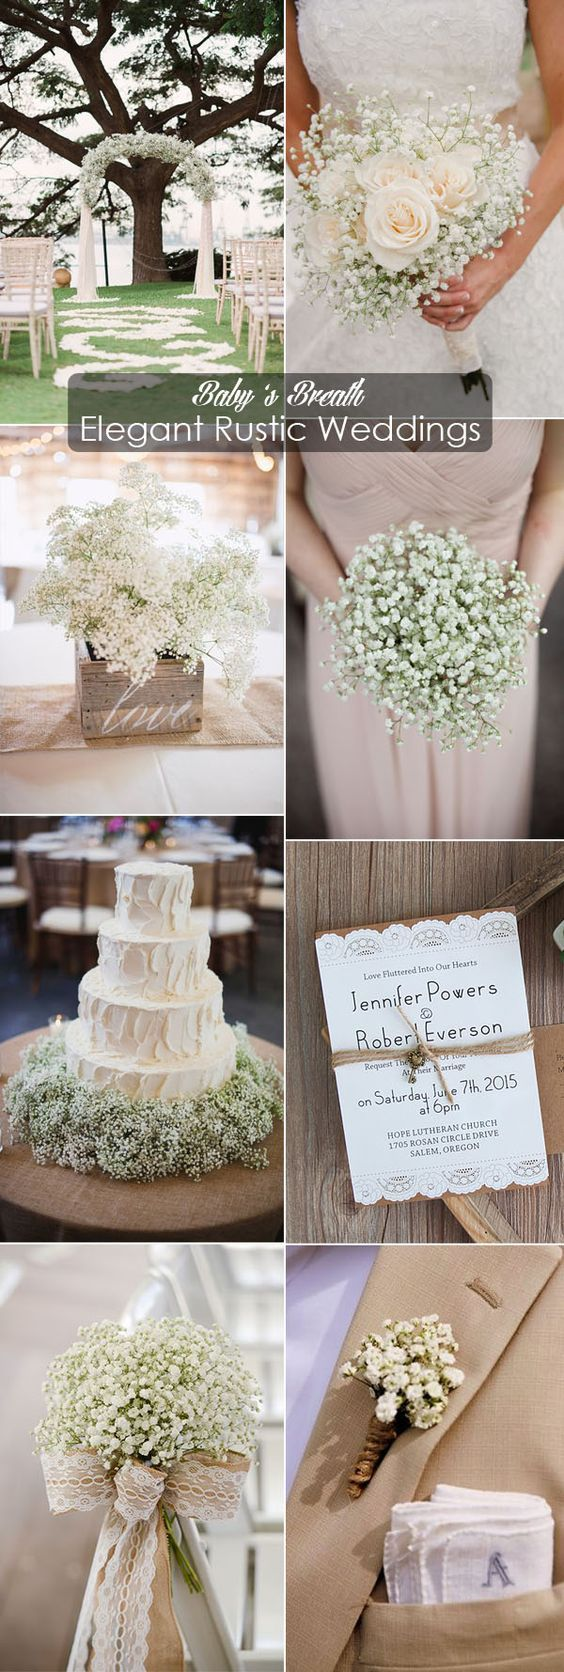 Wedding decorations at church november 2018  best Weddings images on Pinterest  Cake wedding Weddings and